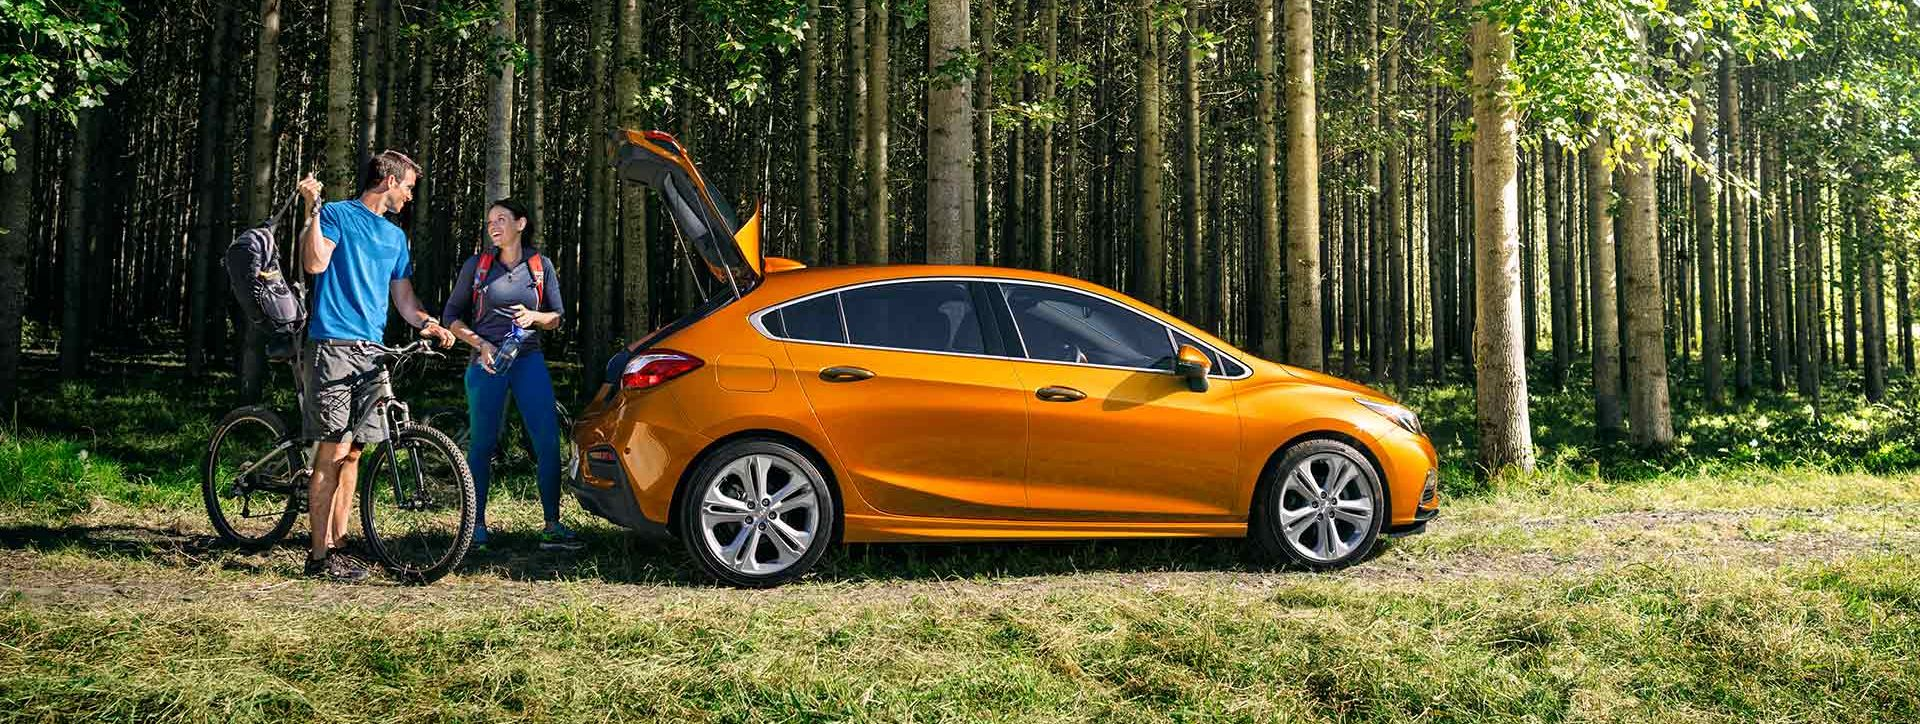 2017 Chevy Cruze for Sale in Highland, IN - Christenson